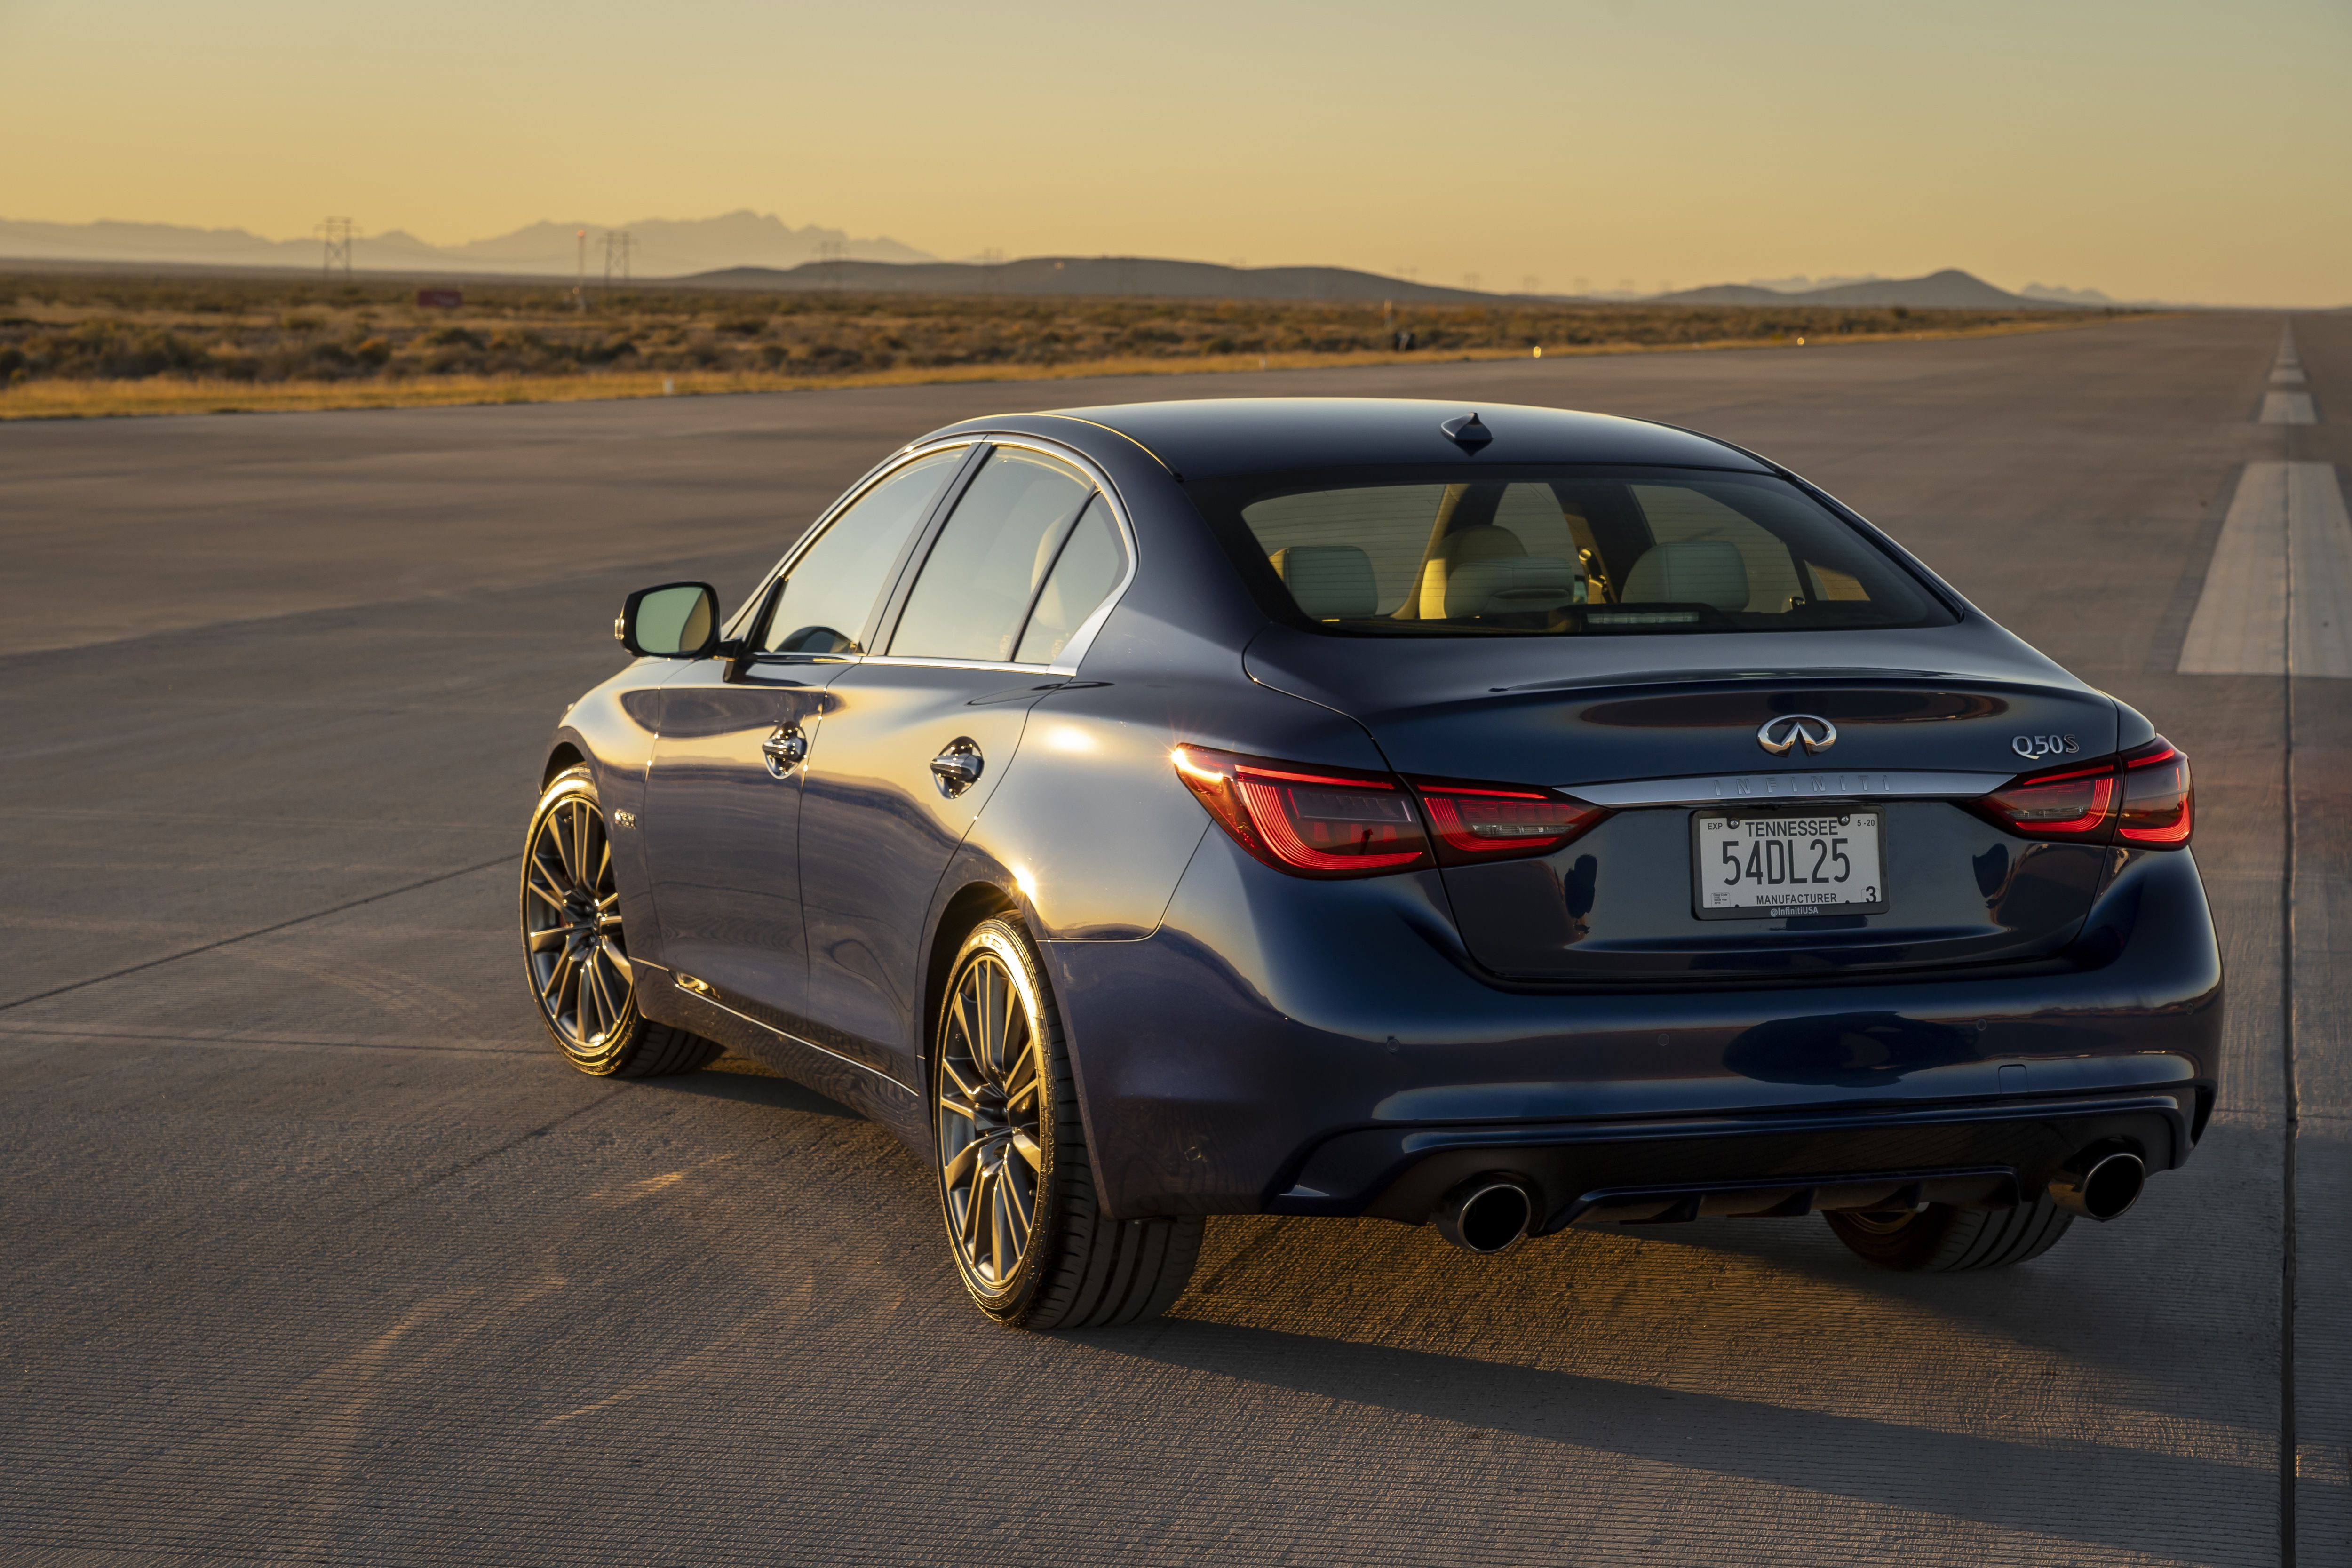 2020 Infiniti Q50 New Model and Performance